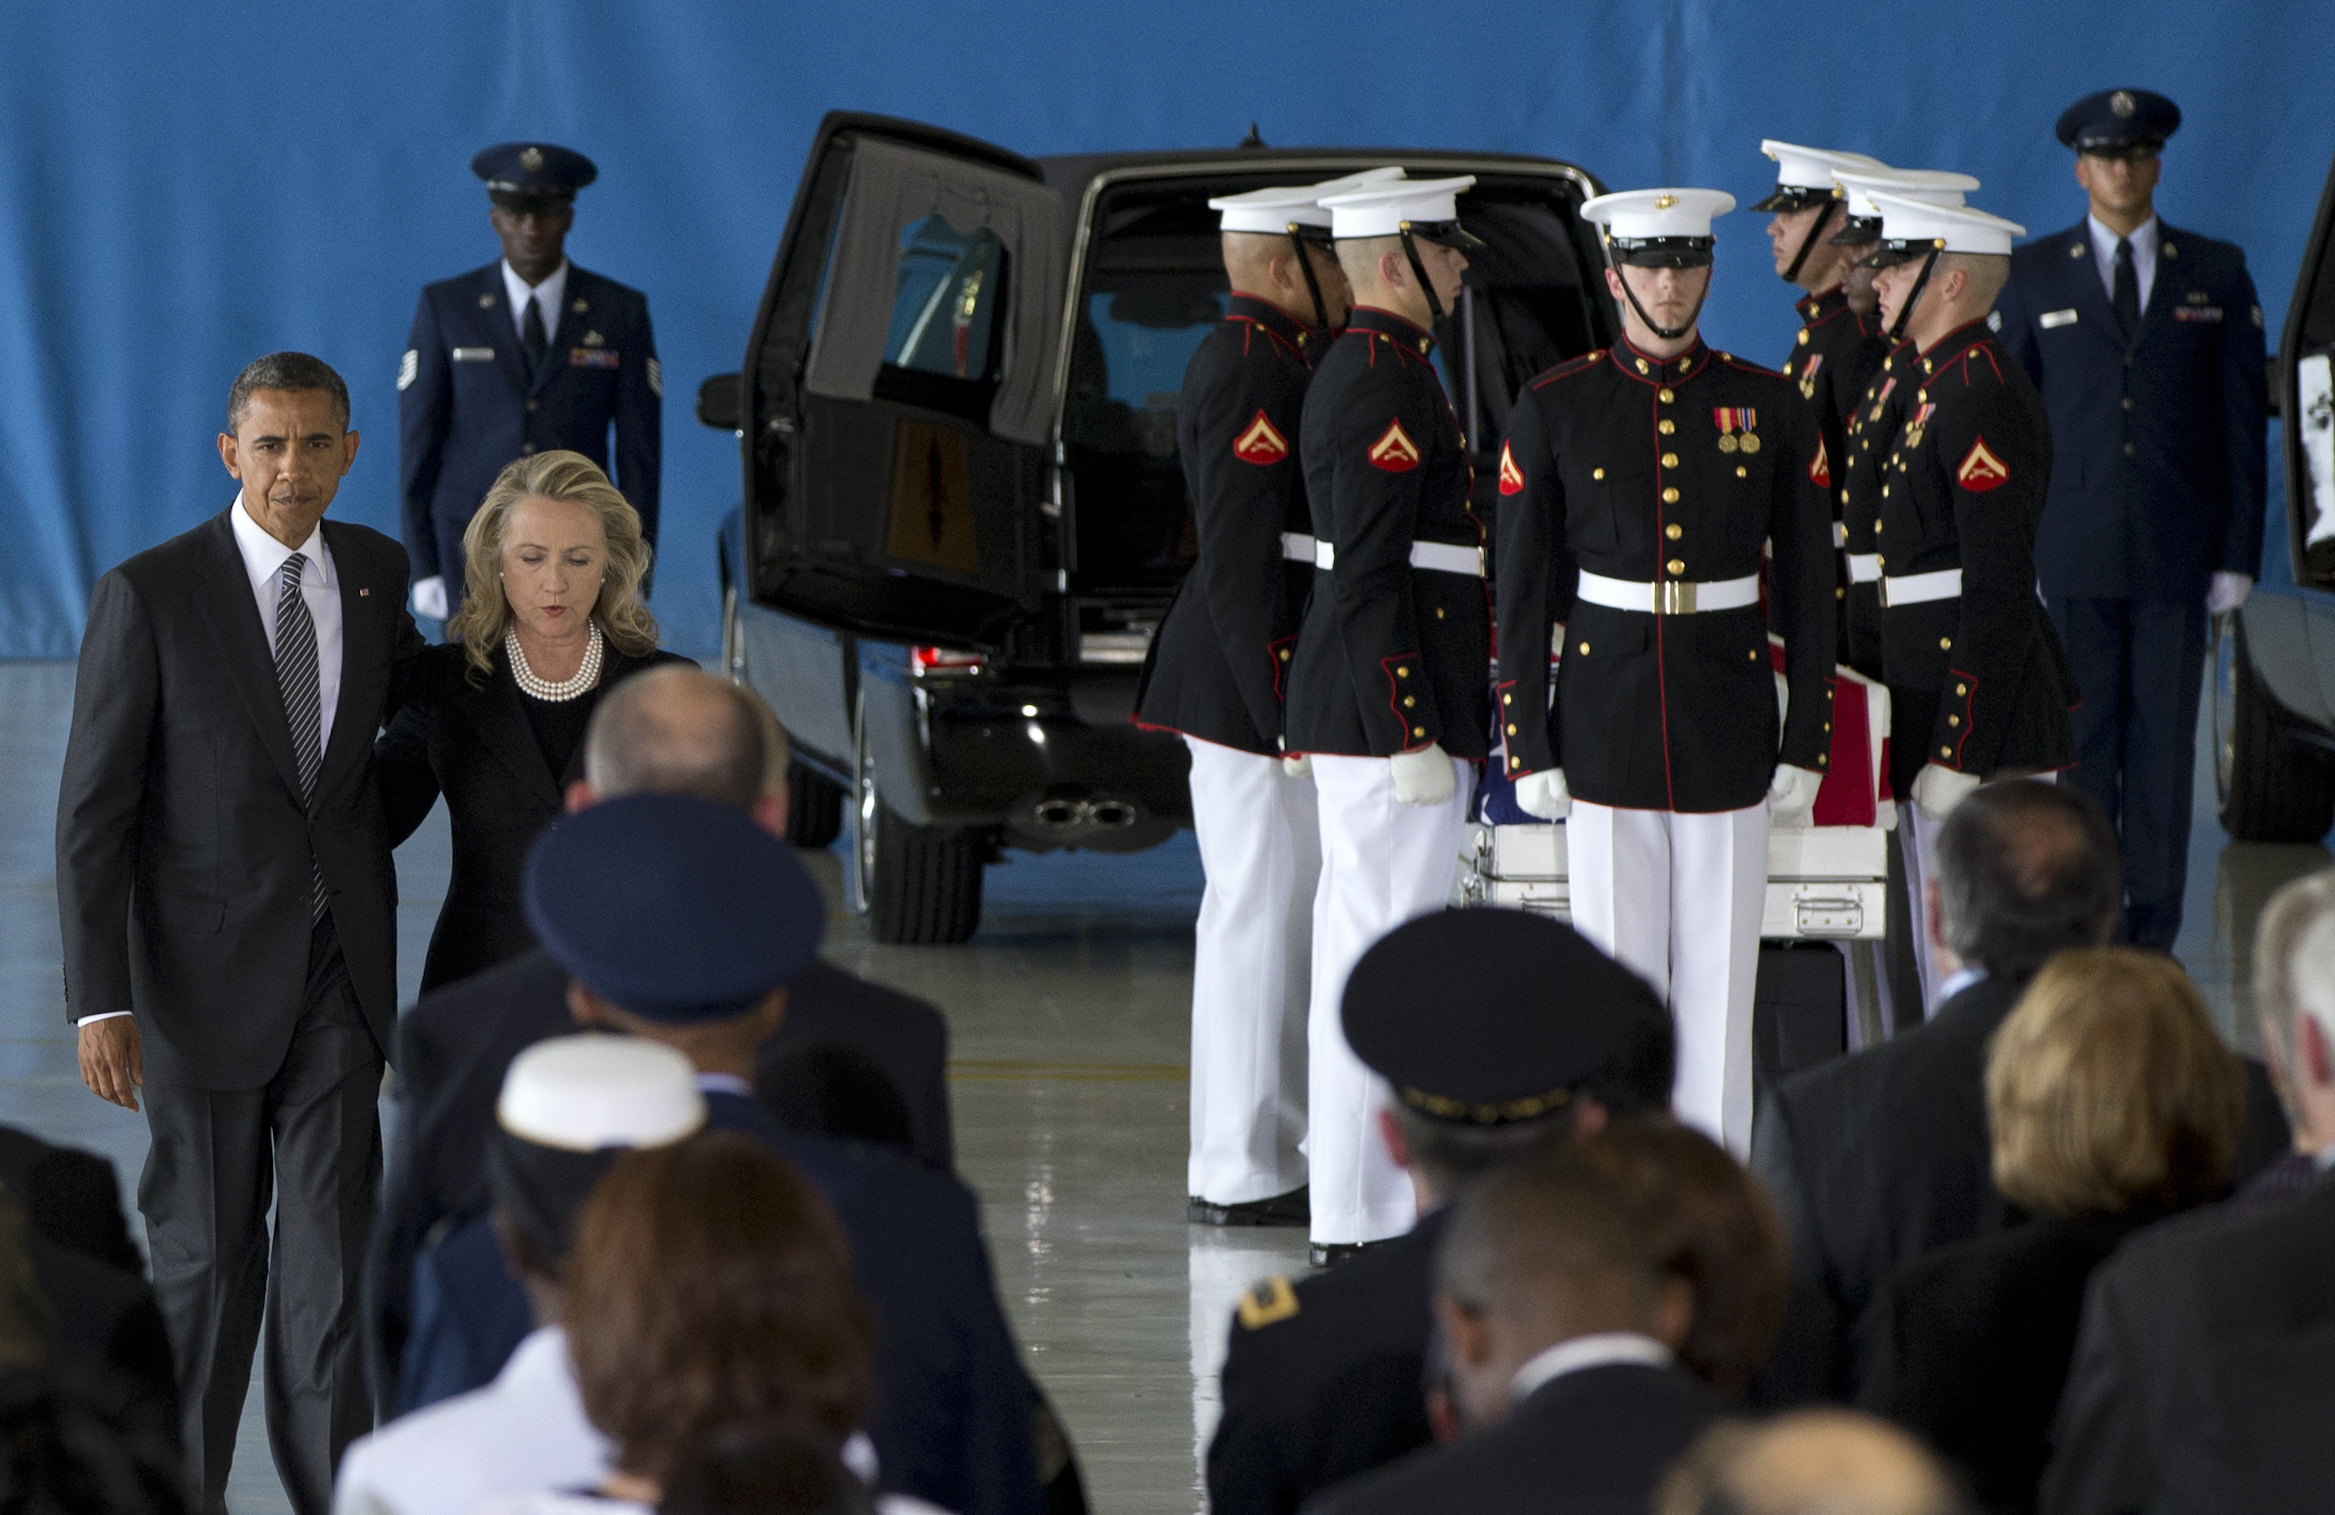 President Obama and then-Secretary of State Hillary Clinton walk back to their seats after speaking at a transfer of remains ceremony  for the Benghazi victims Sept. 14, 2012, at Joint Base Andrews. (AP Photo)